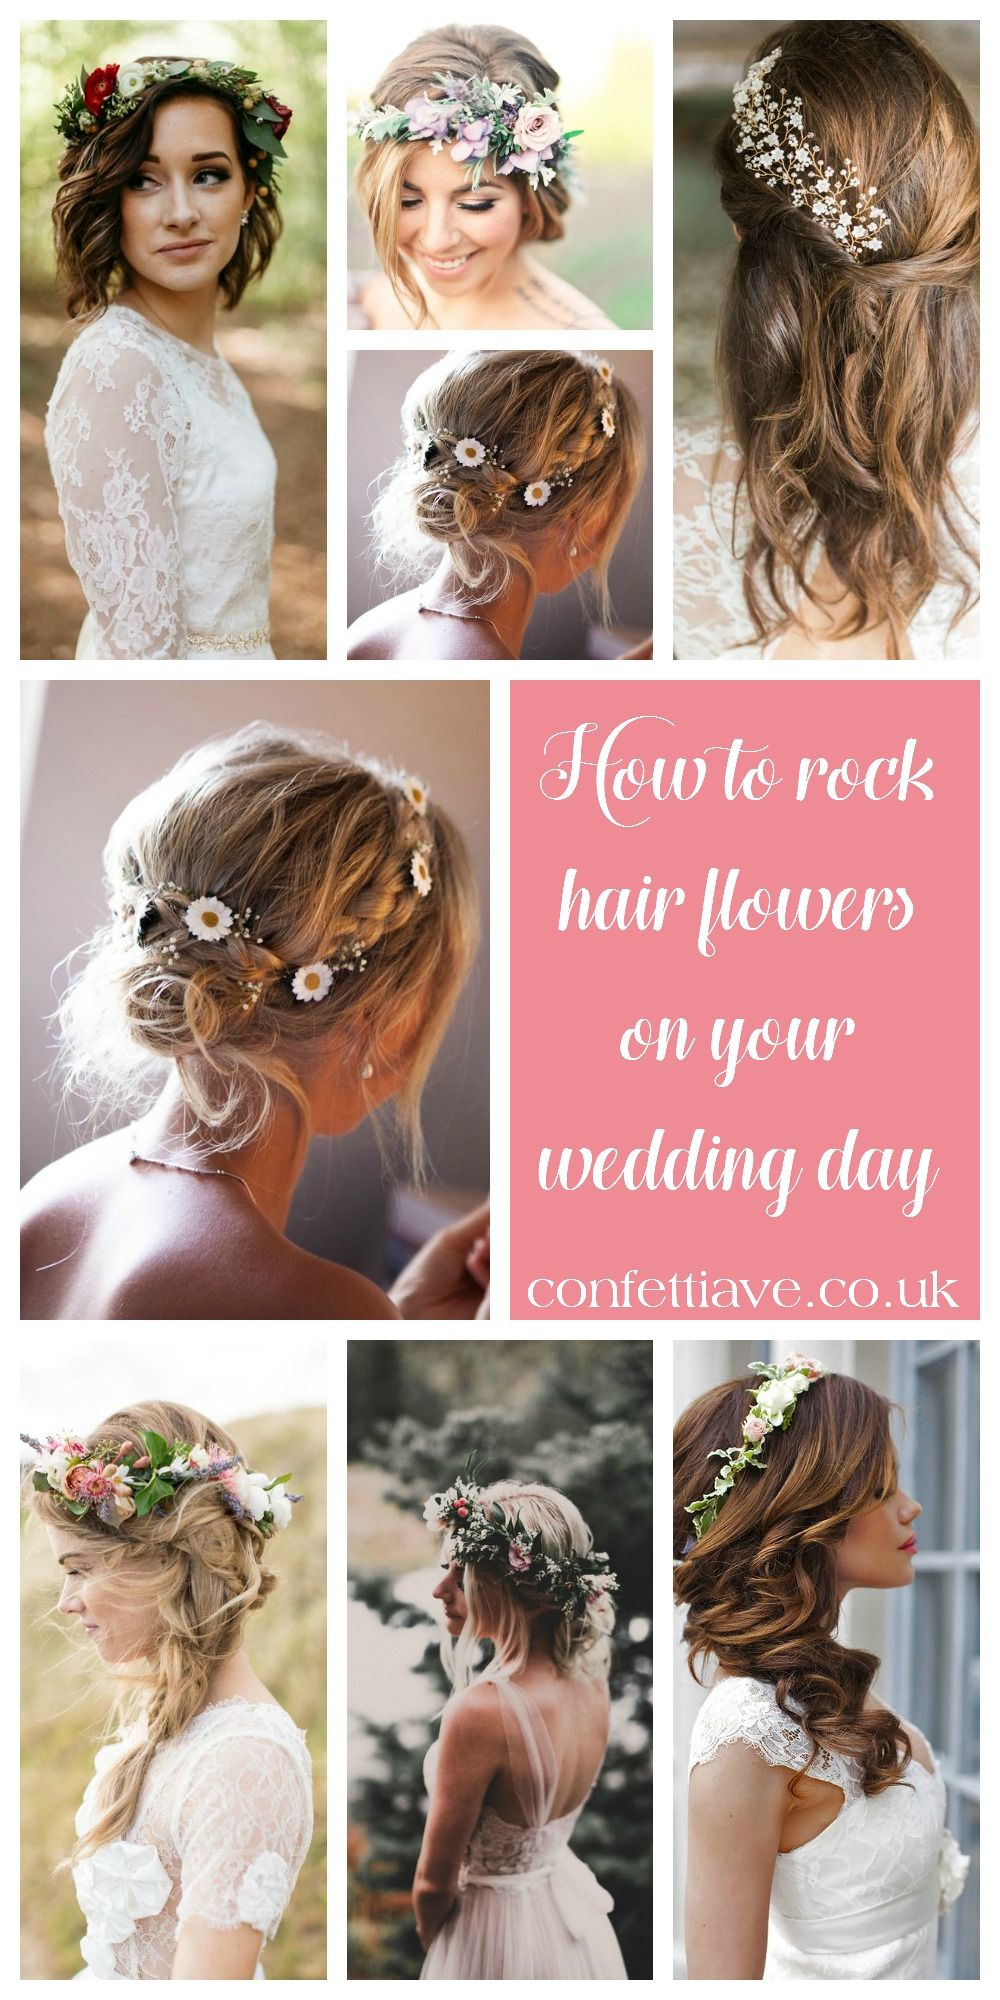 How to ROCK Hair flowers | Inspiration http://confettiave.co.uk/hair ...